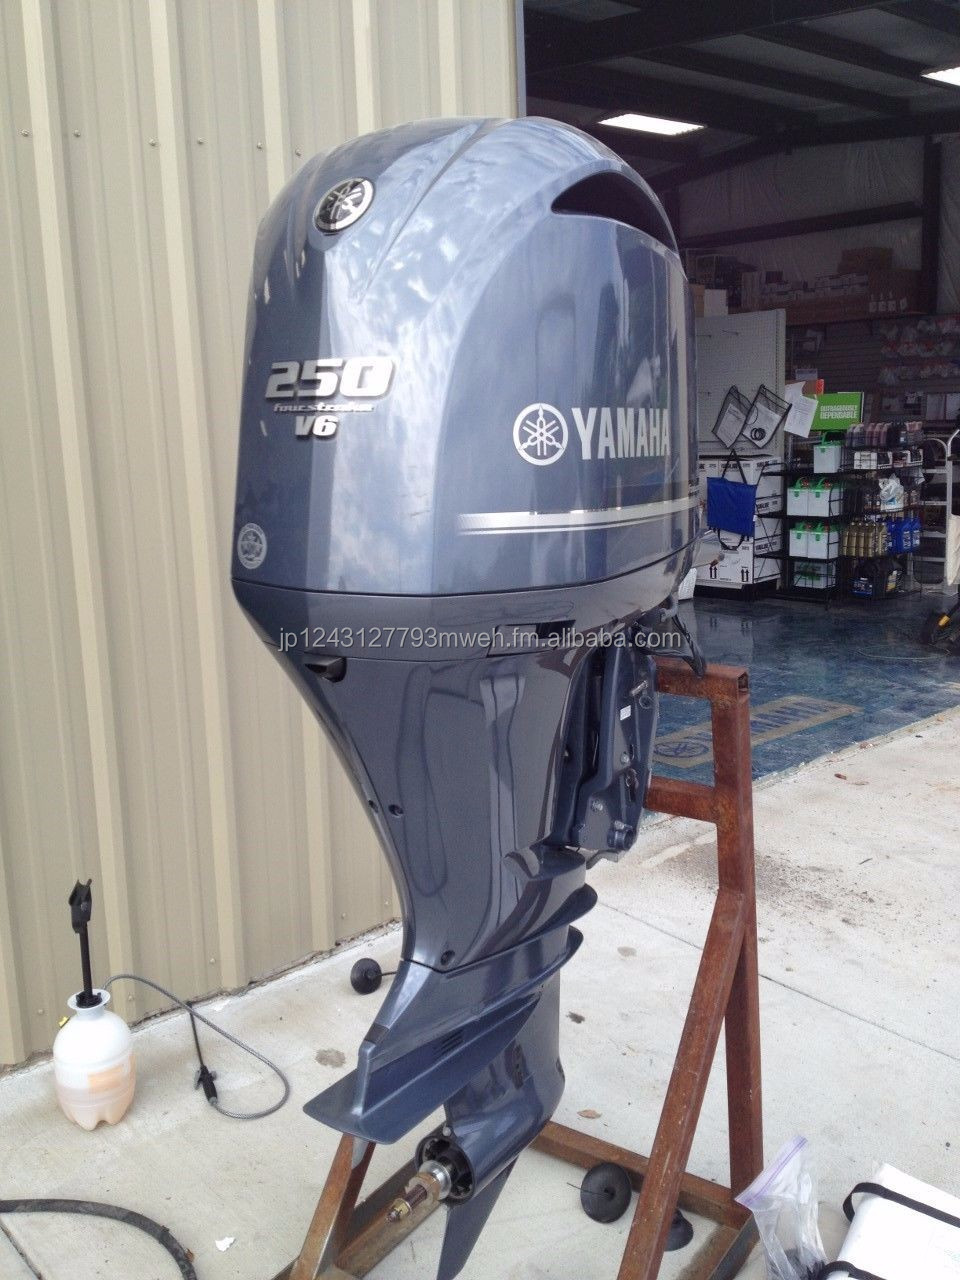 Free Shipping For Used Yamaha 250 HP 4 Stroke Outboard Motor